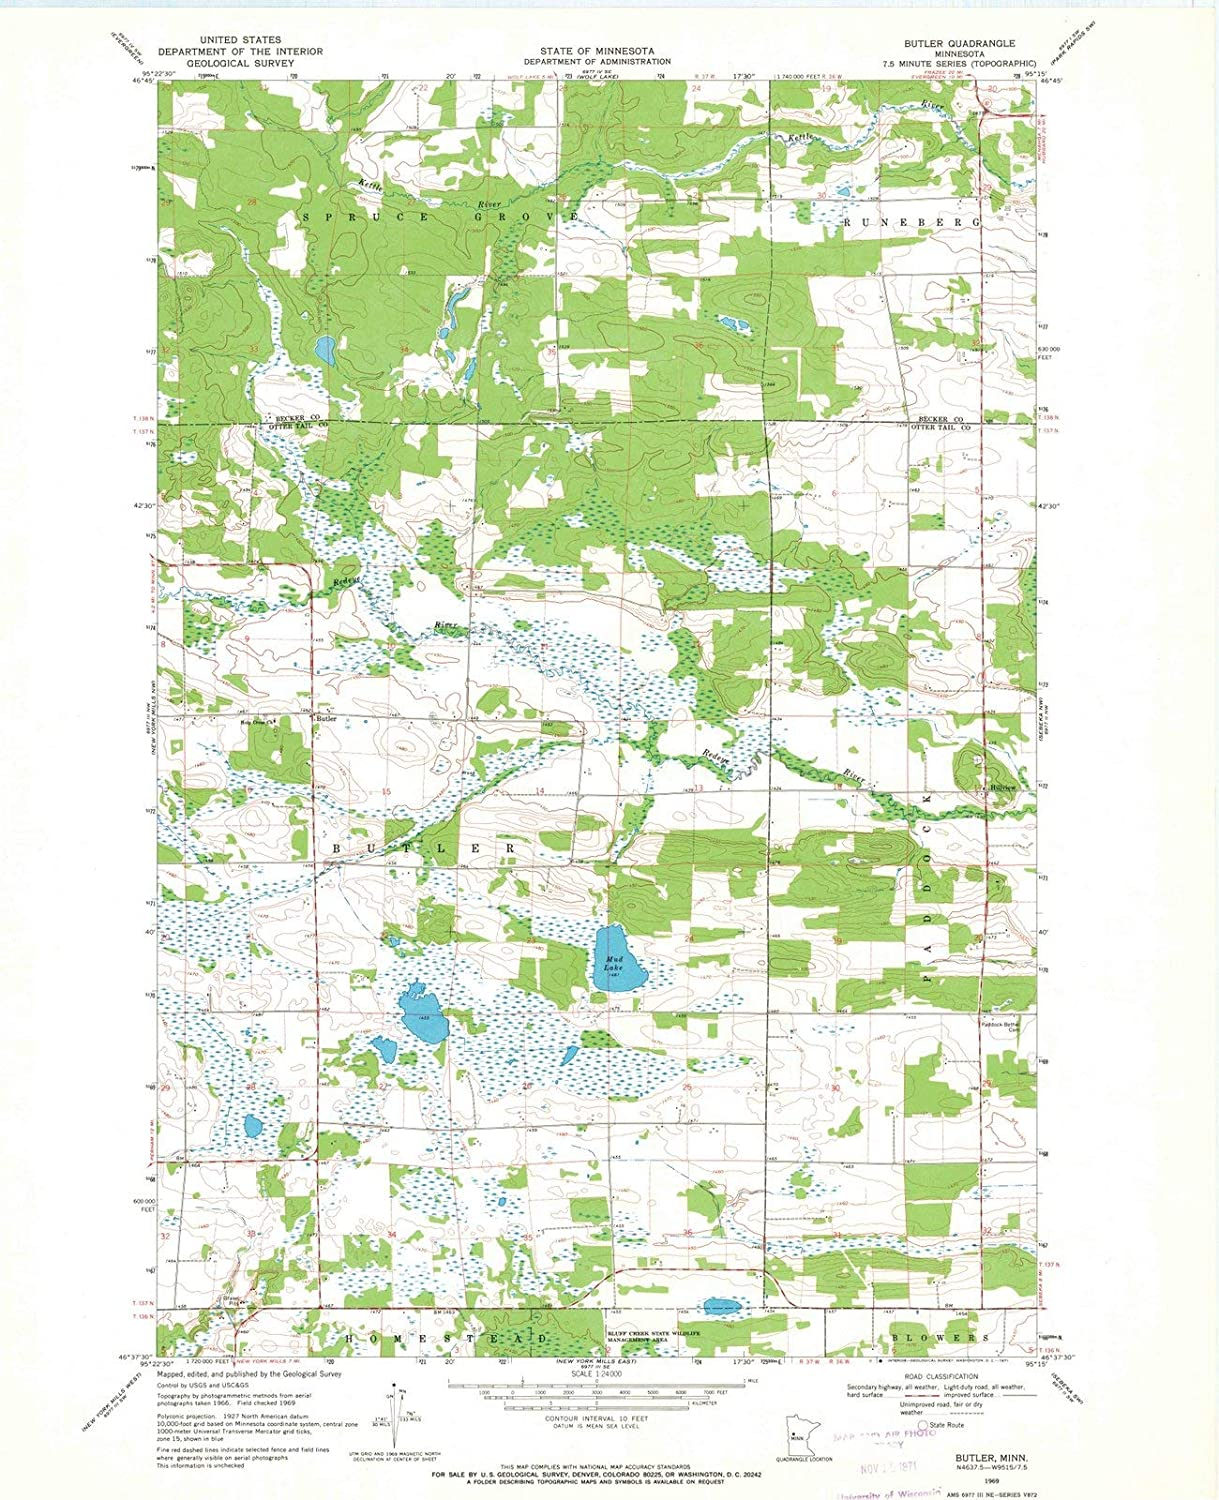 Amazon.com: Minnesota Maps | 1969 Butler, MN USGS Historical ... on ind map, shakopee map, eagan map, tresure map, london map, plymouth map, wisconsin map, mille lacs lake map, mankato map, hastings map, bloomington map, edina map, blaine mn map, minnesota map, mn highway map, moorhead map, michigan map, texas map, minneapolis map, mich map,